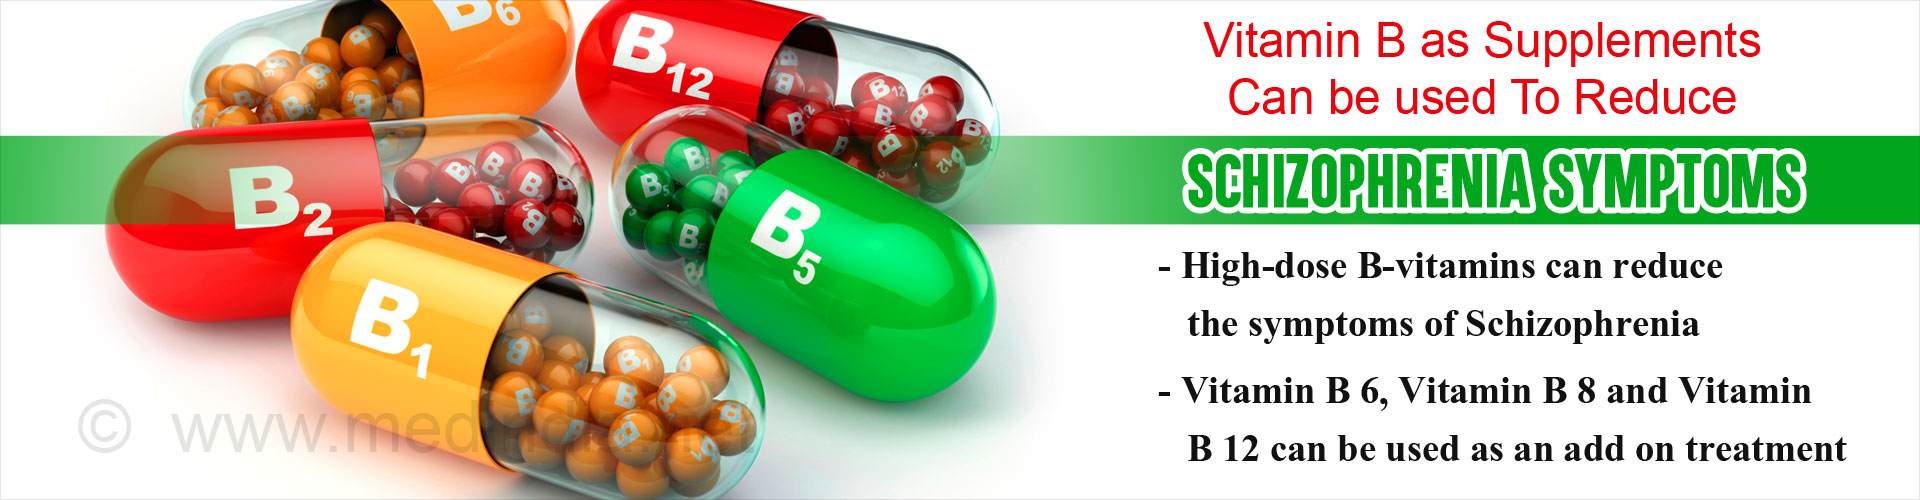 B Vitamins Can Reduce Schizophrenia Symptoms